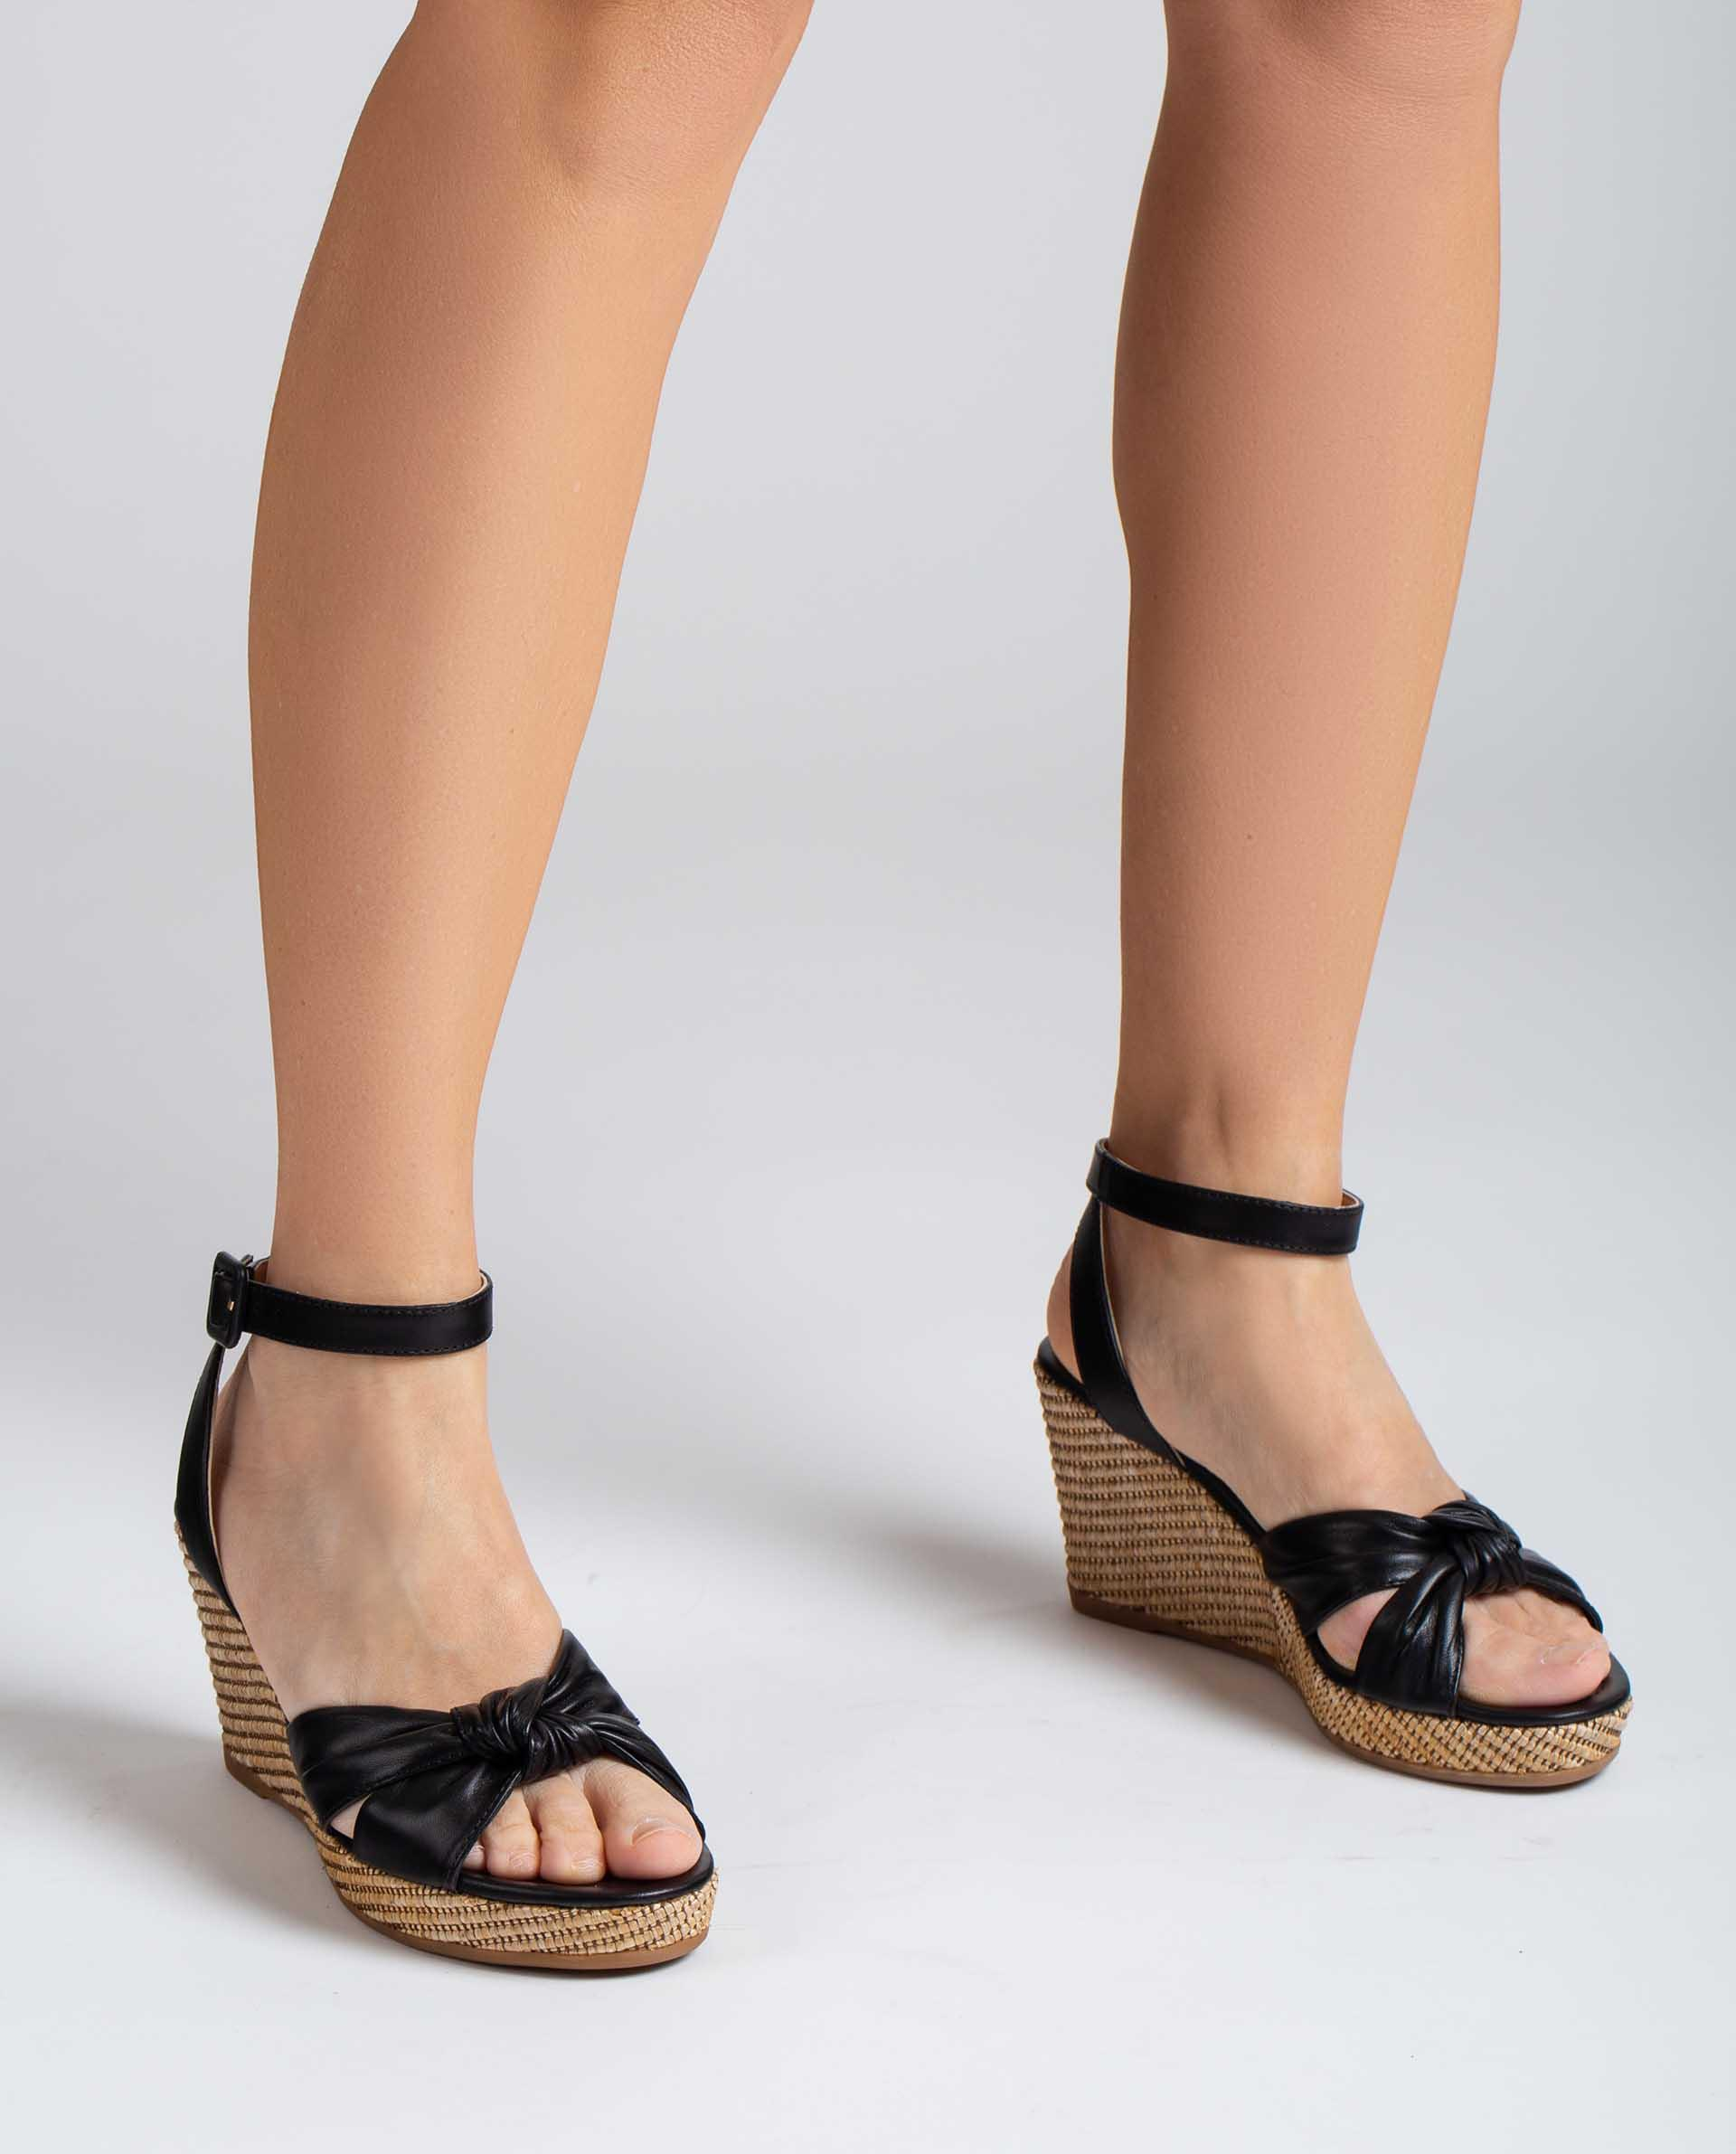 UNISA Leather sandals with straps tied up in a knot LAZKAO_NS 2